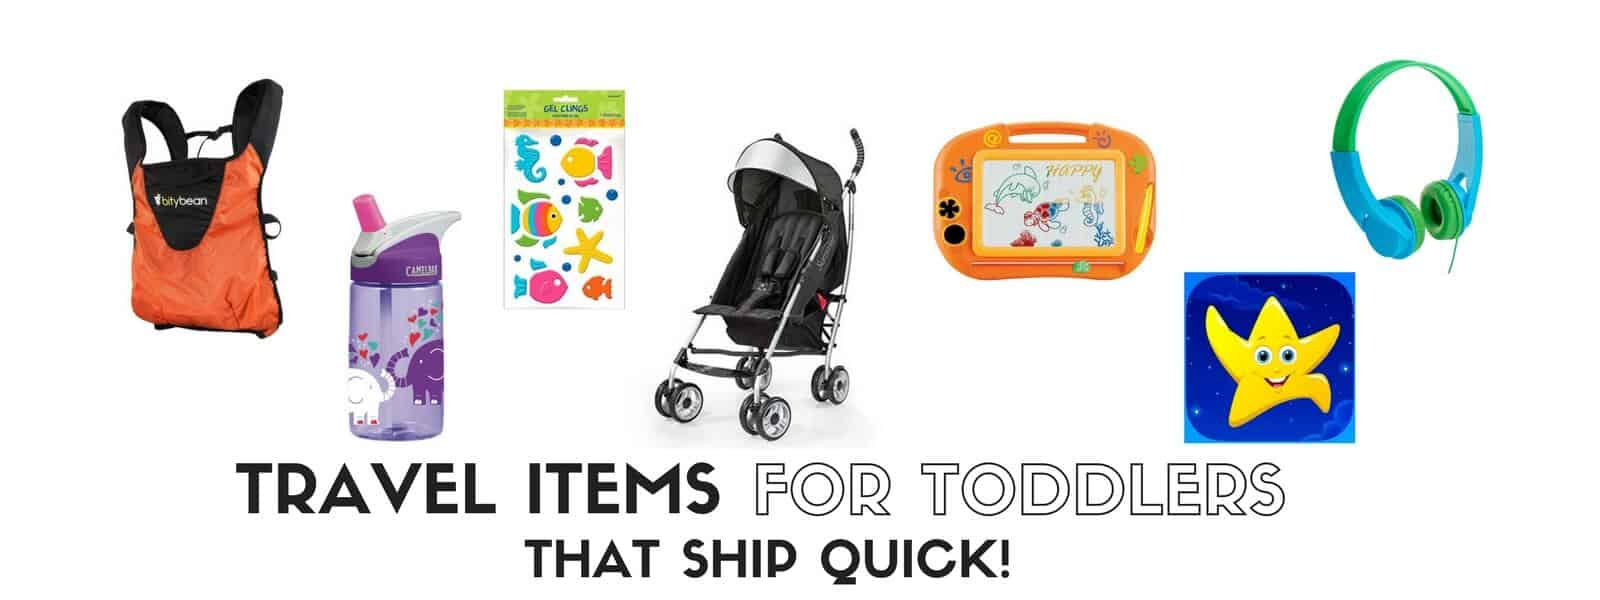 Check out these great toddler-friendly travel items, including a review of the Kidloland educational app, to help you be prepared for travel with kids no matter how much you procrastinated on buying things! (All are Amazon Prime friendly!) | themomfriend.com